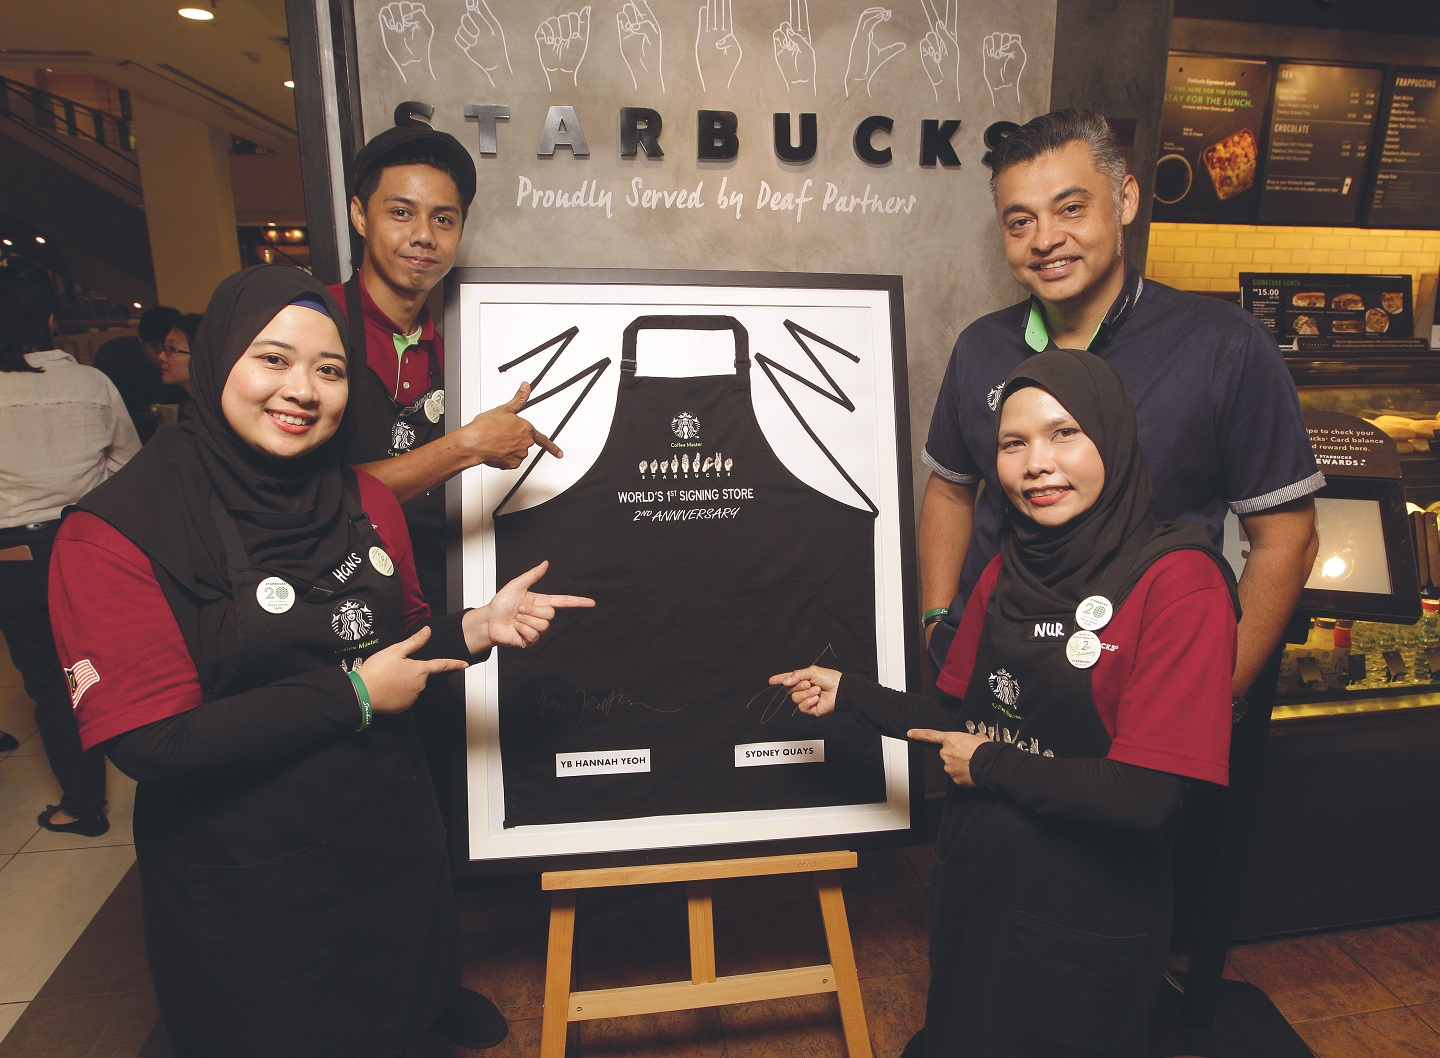 Starbucks Signing Store in Bangsar creates career opportunities for the deaf community